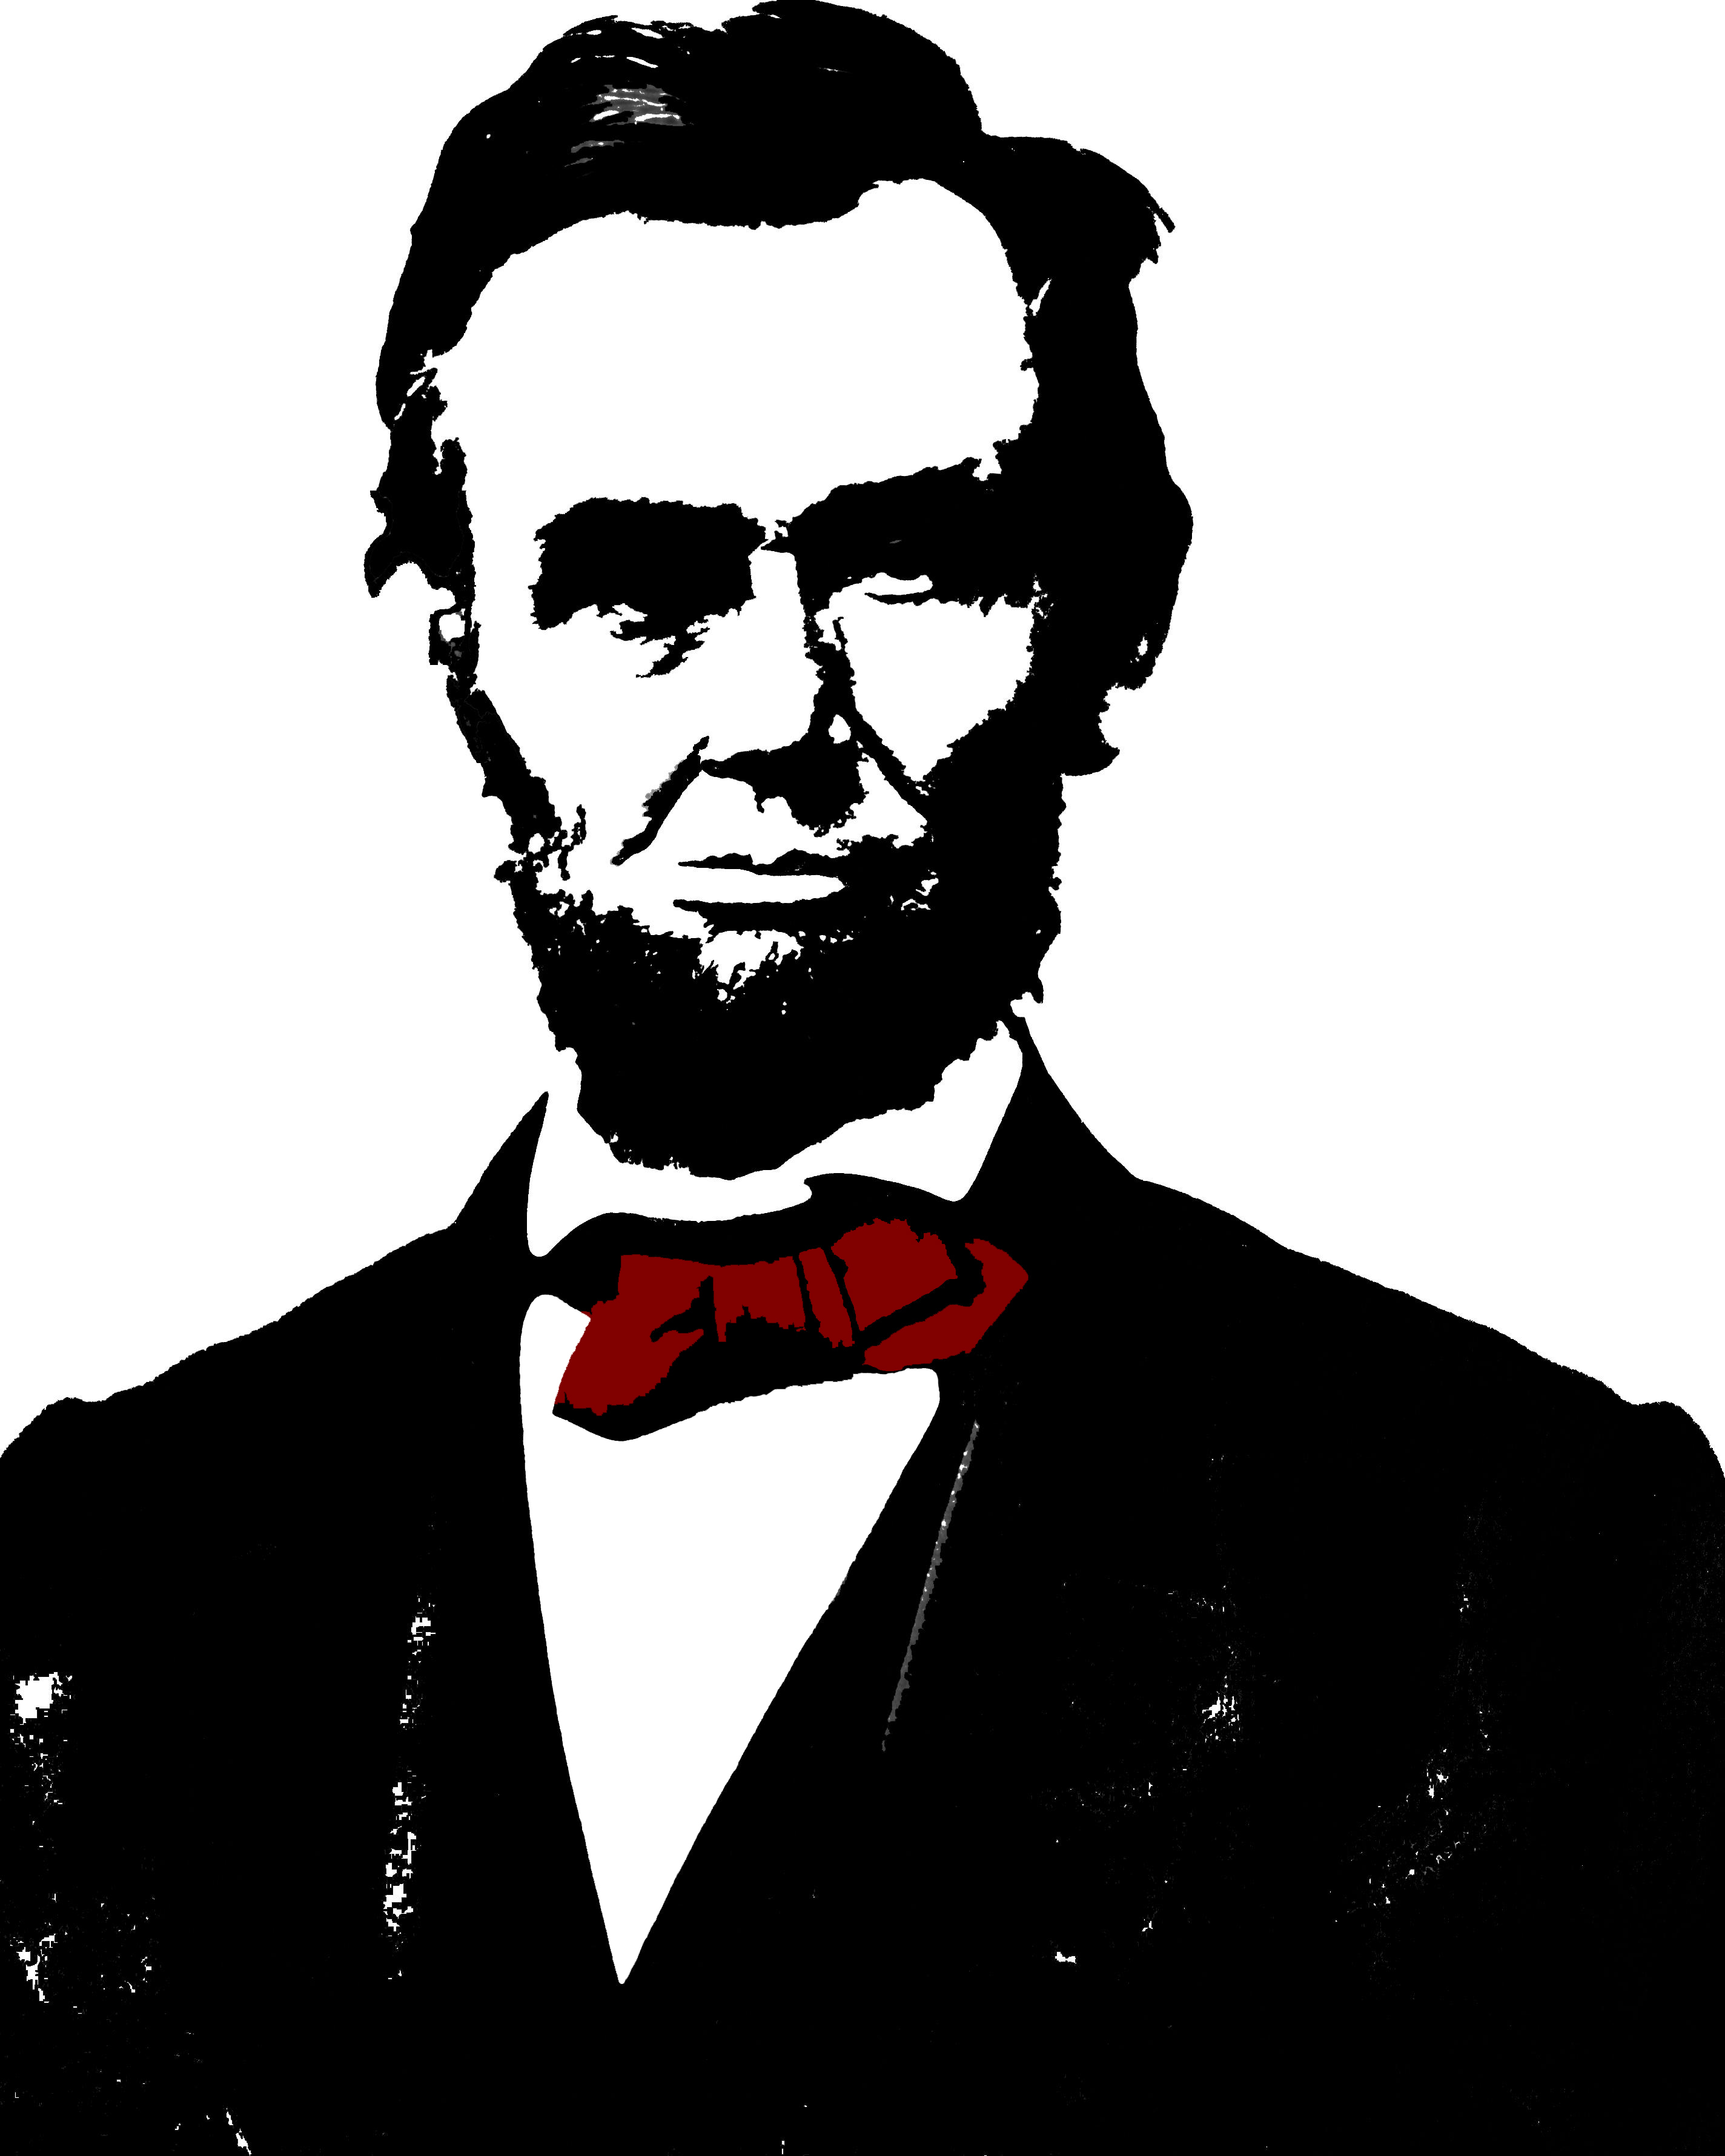 abraham Lincoln Presidents HD Wallpaper